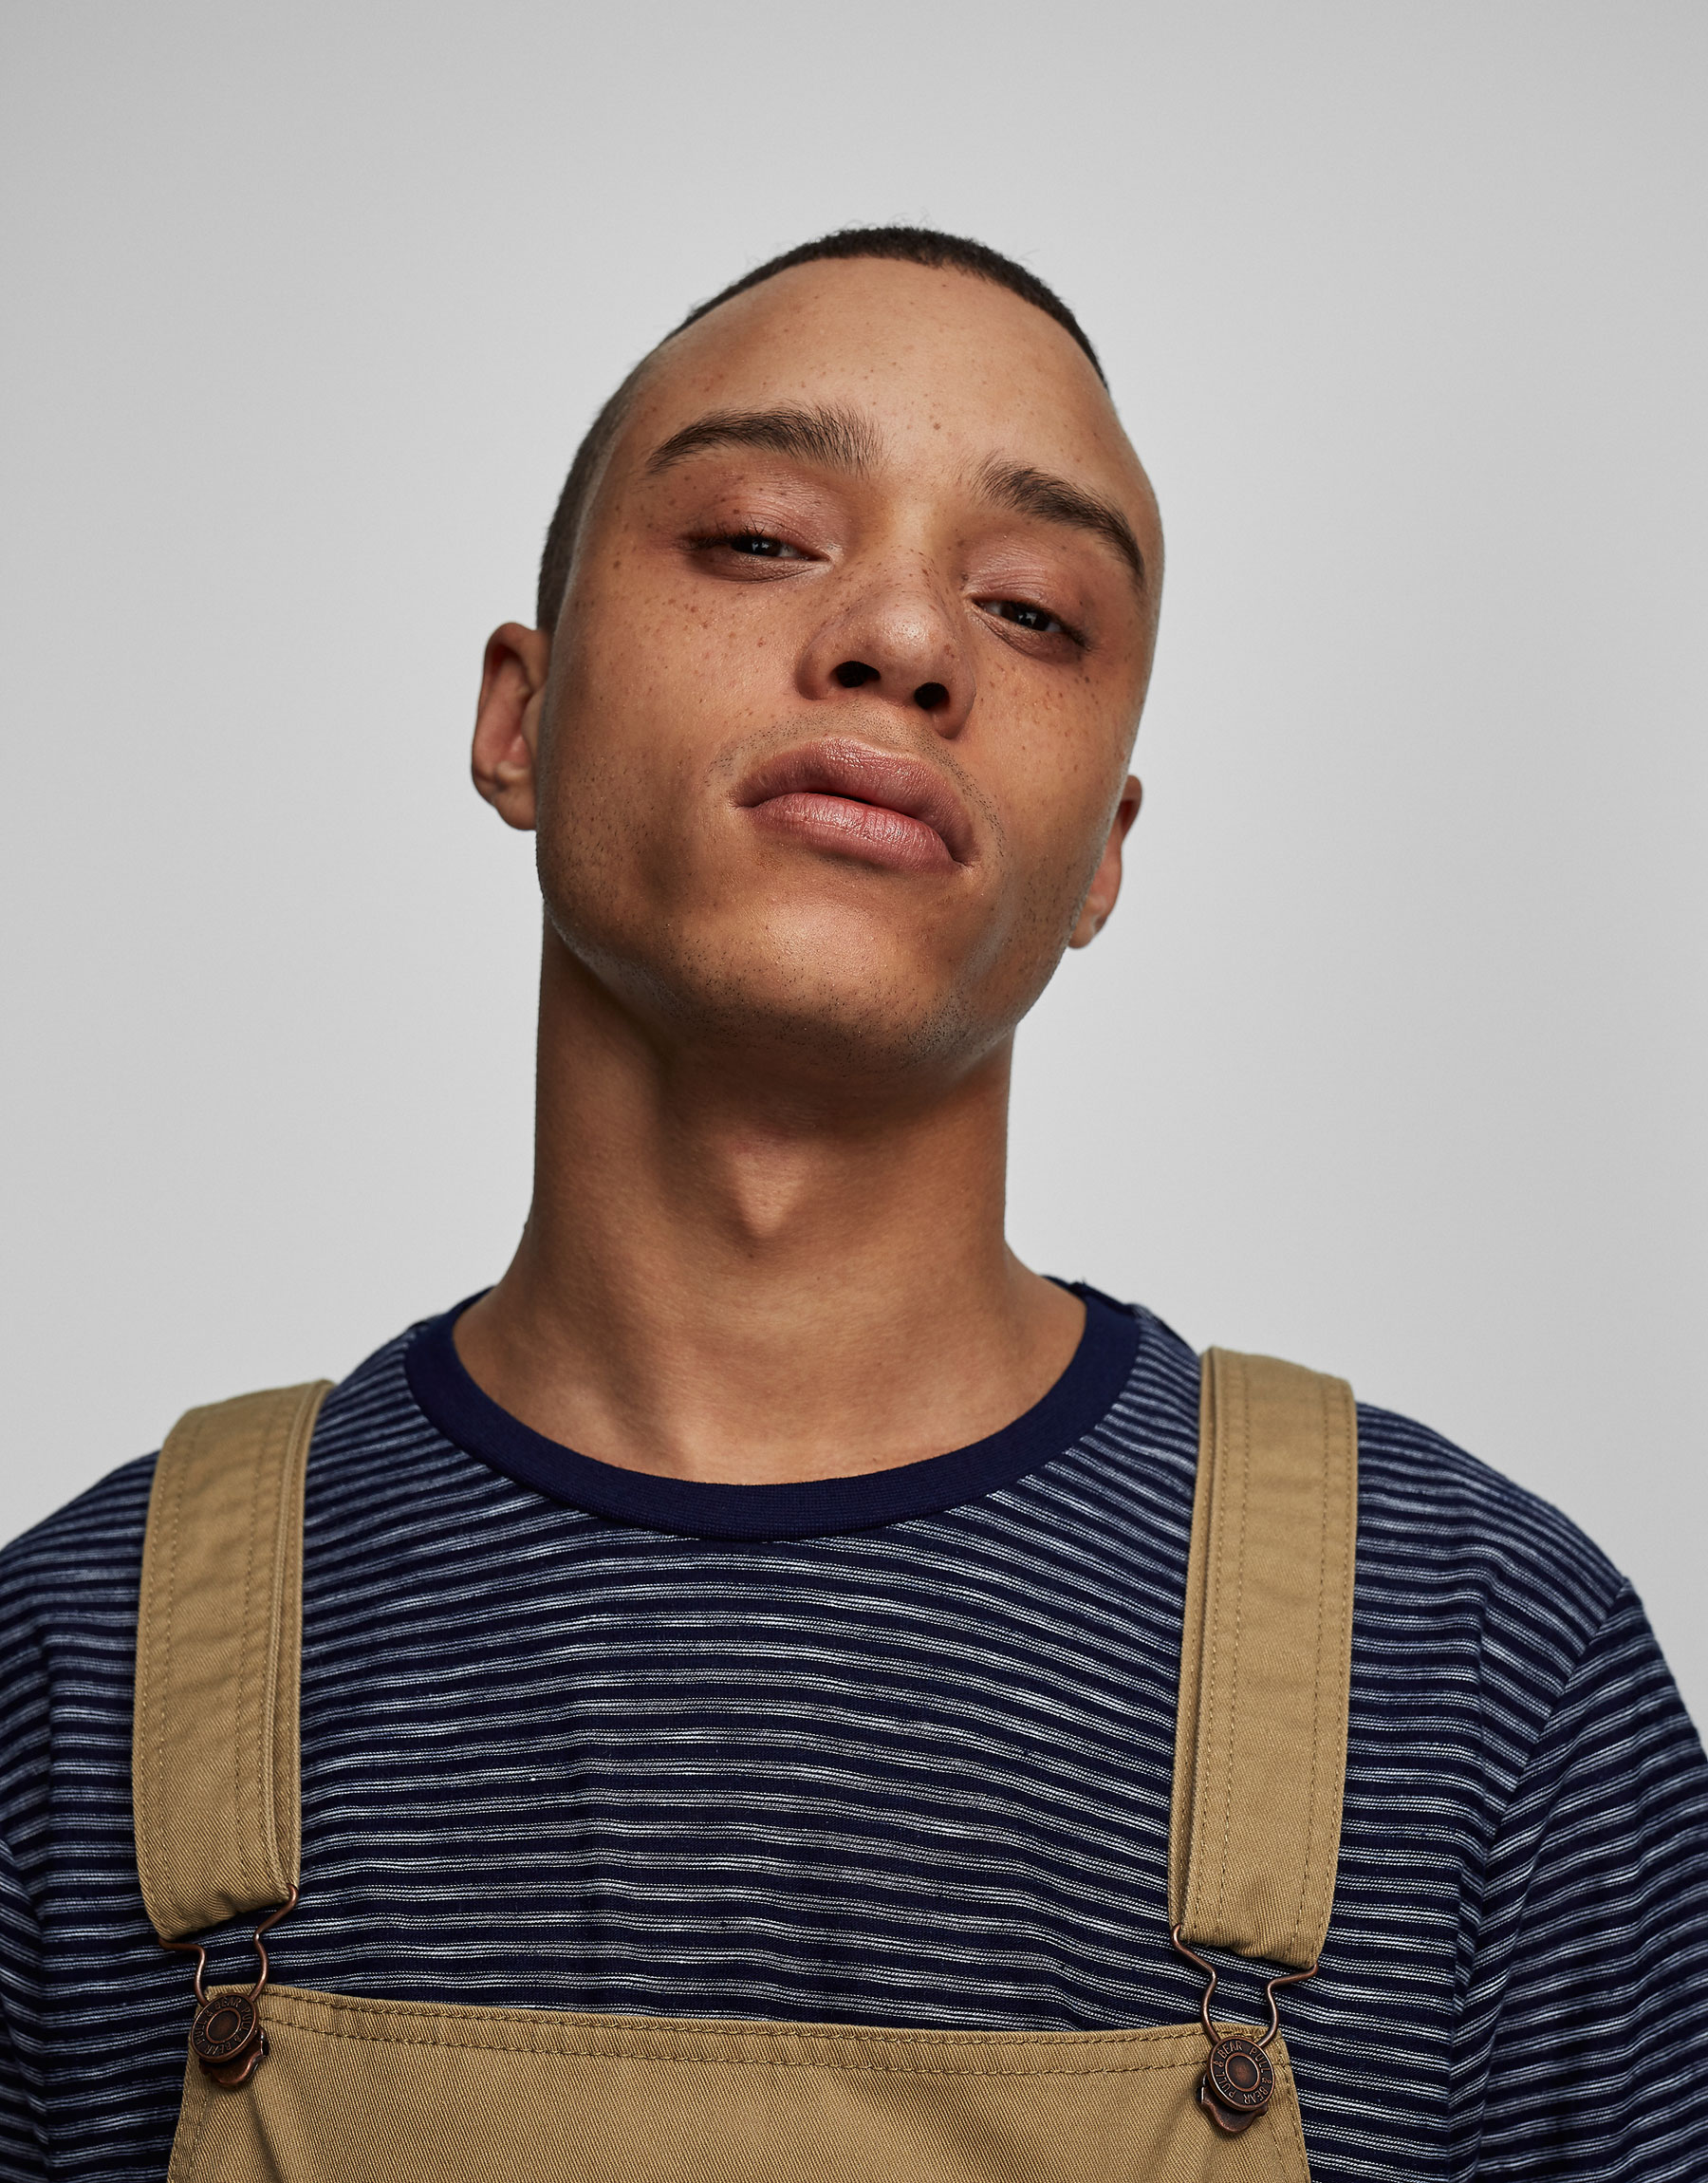 Indigo T-shirt with thin stripes